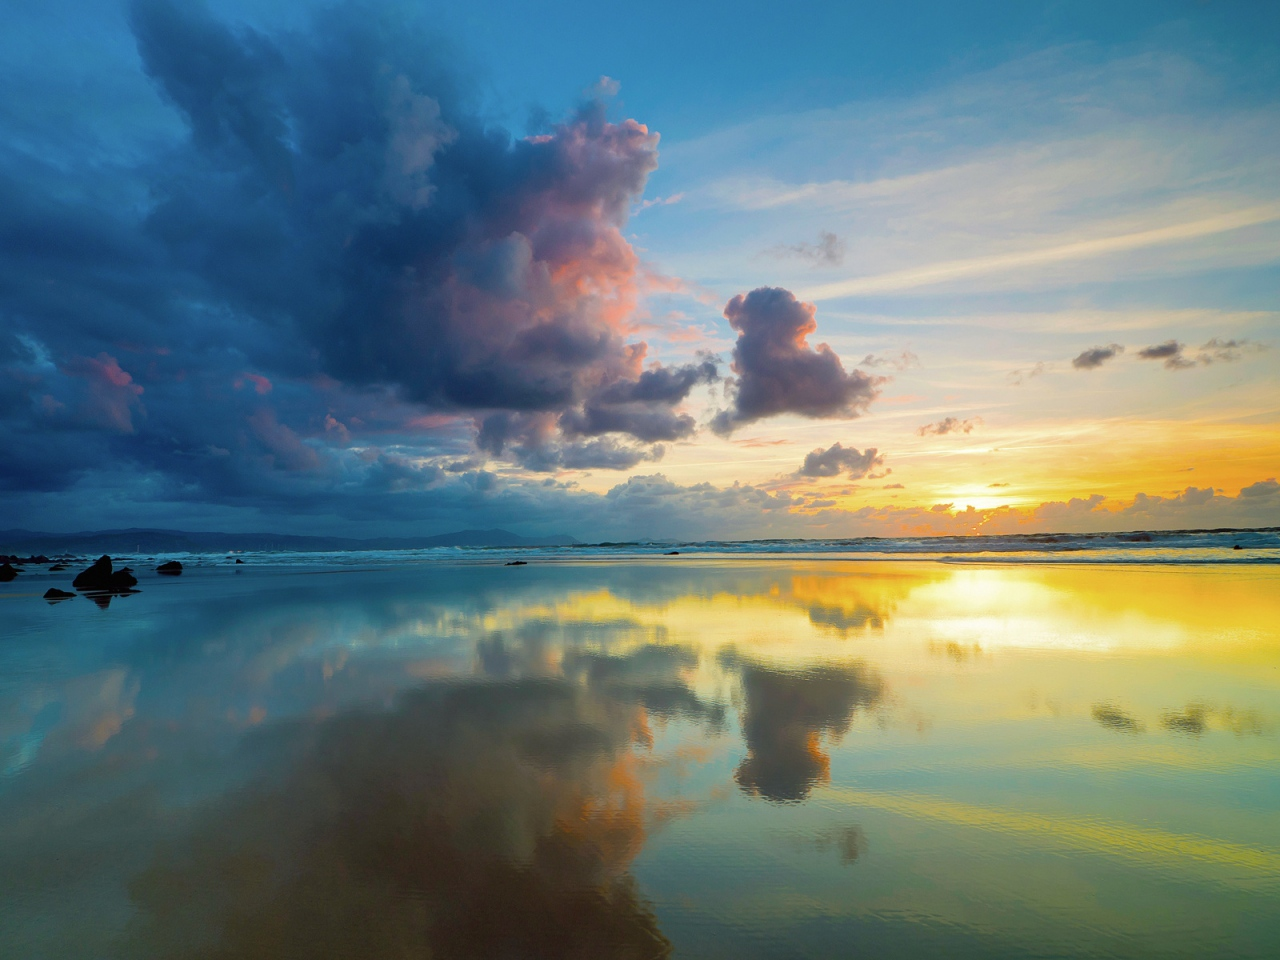 clouds-sky-sea-reflection-mirror-evening